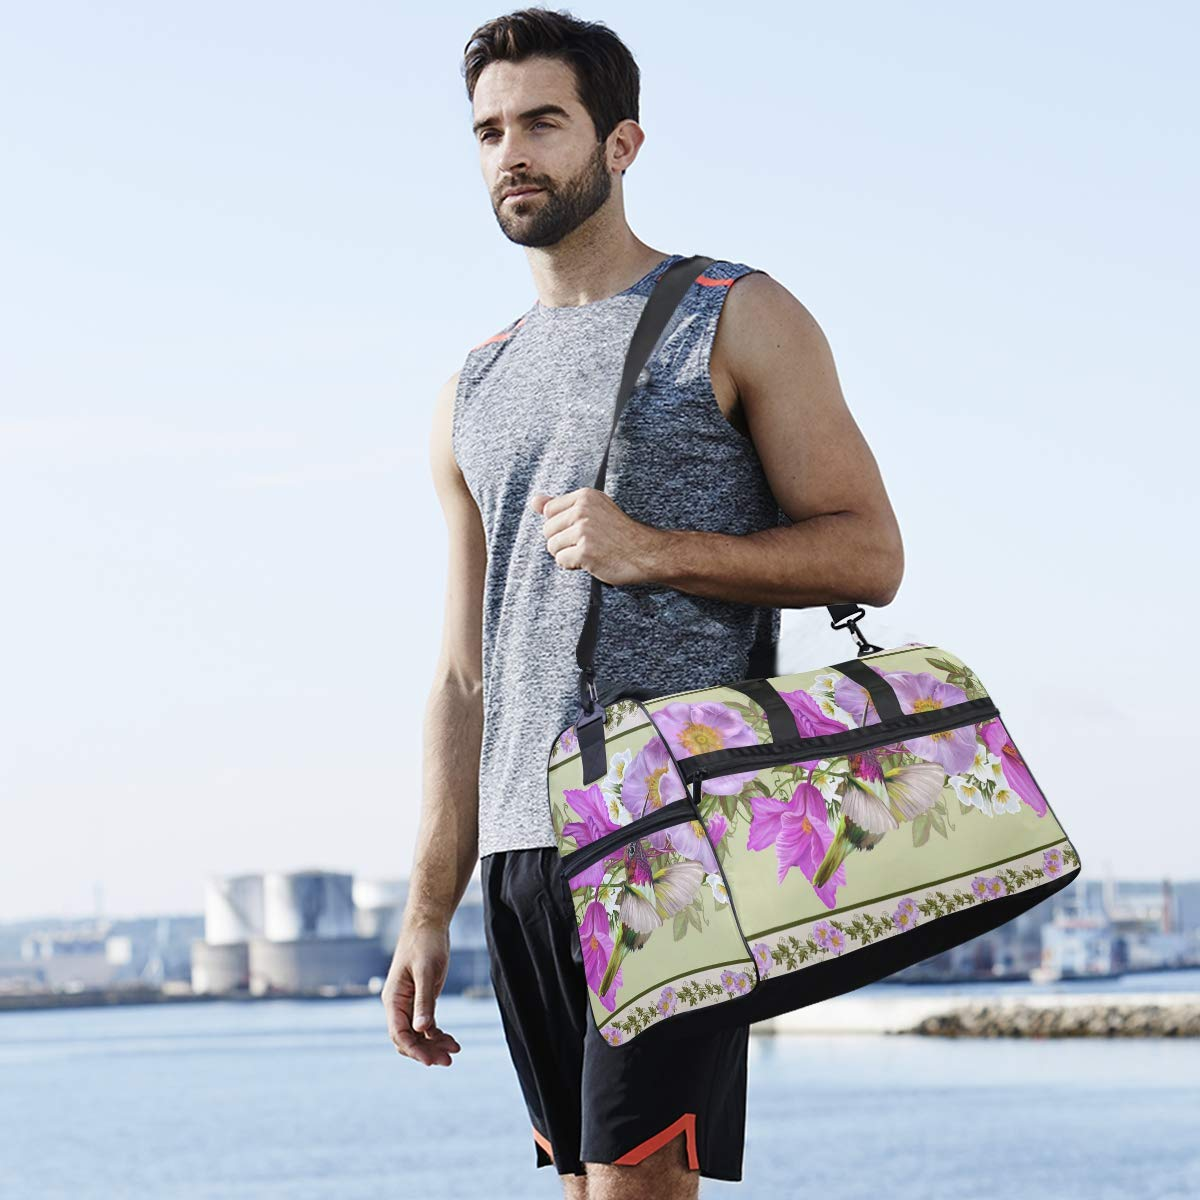 Vacation Gym Travel Duffel Bag Tropical Floral Waterproof Lightweight Luggage bag for Sports